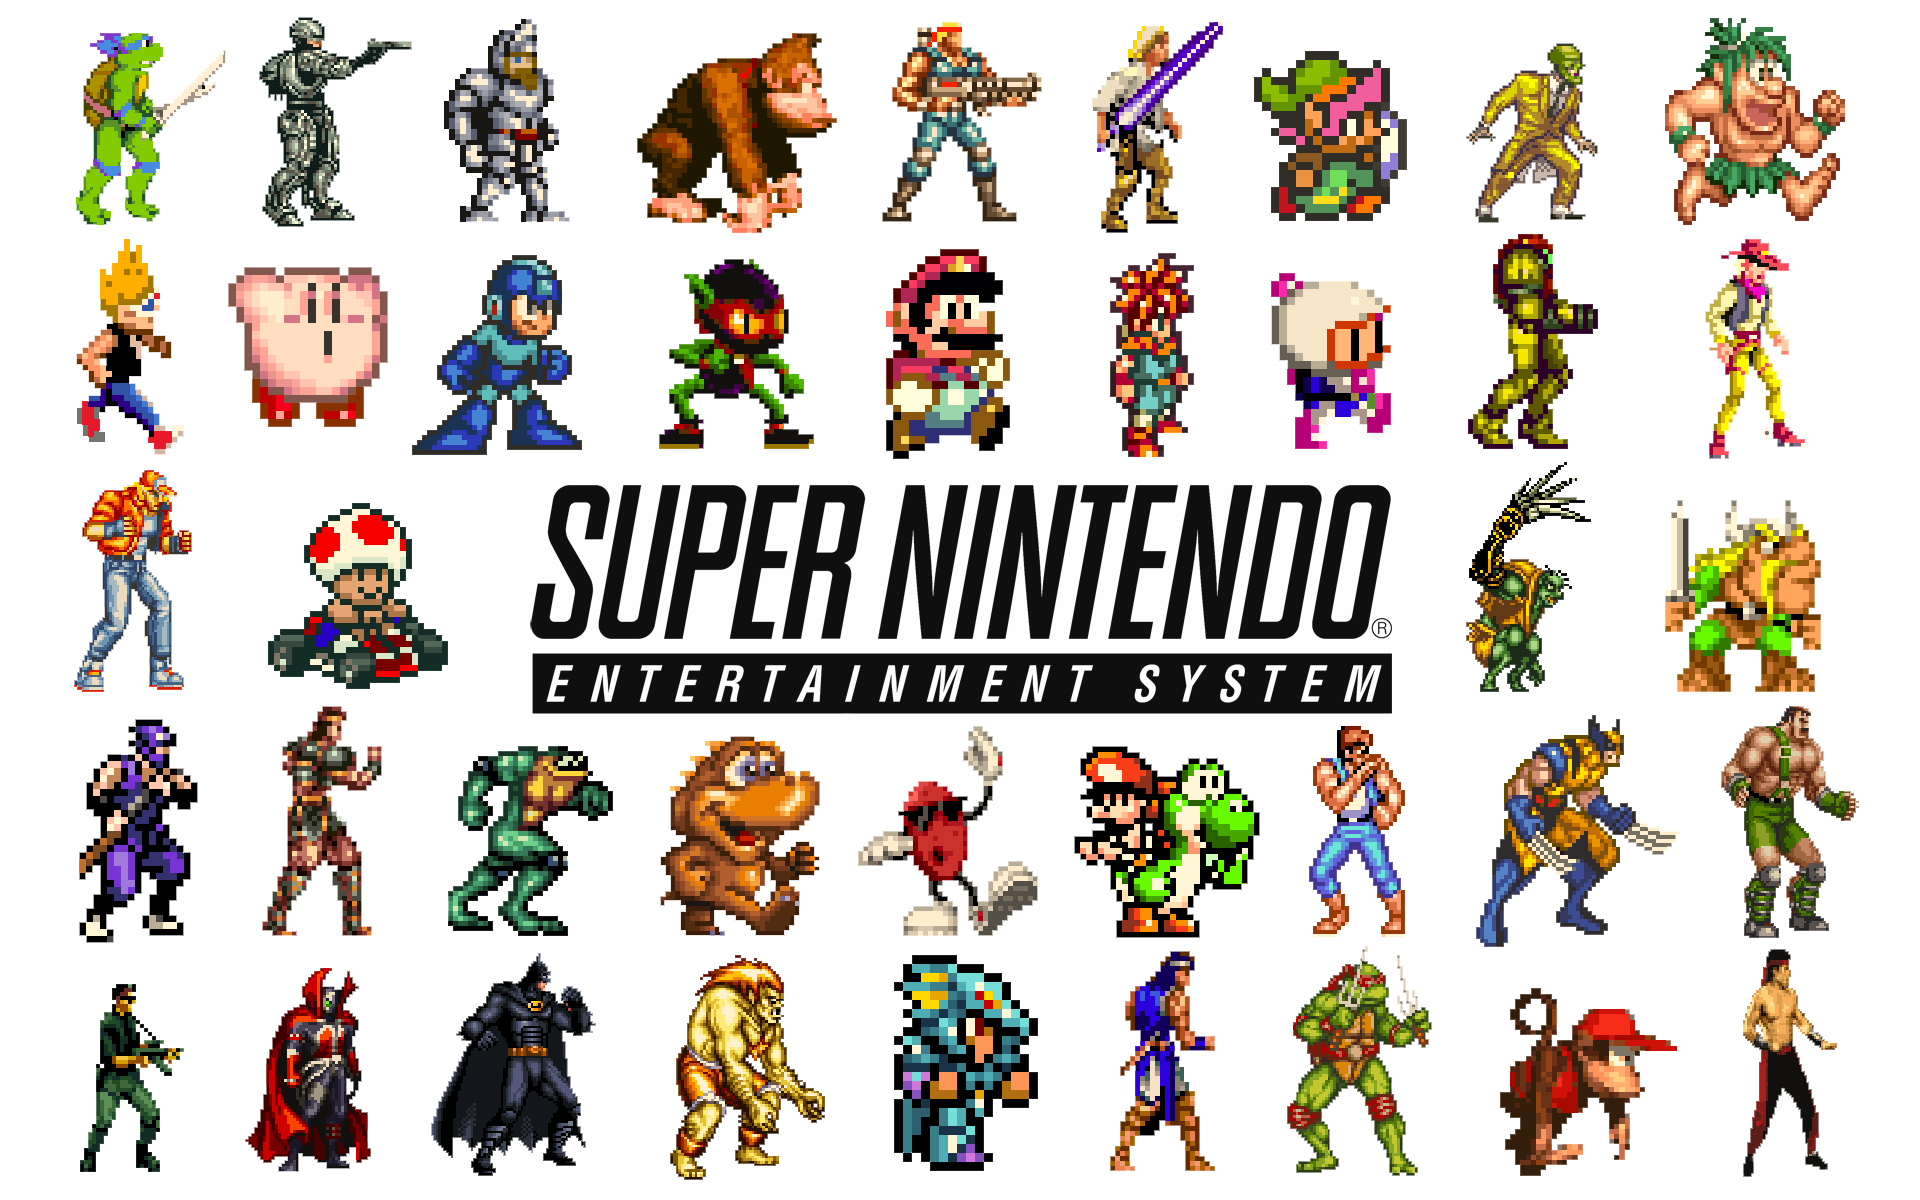 Super Nintendo Entertainment System Kirbypedia Fandom Powered By